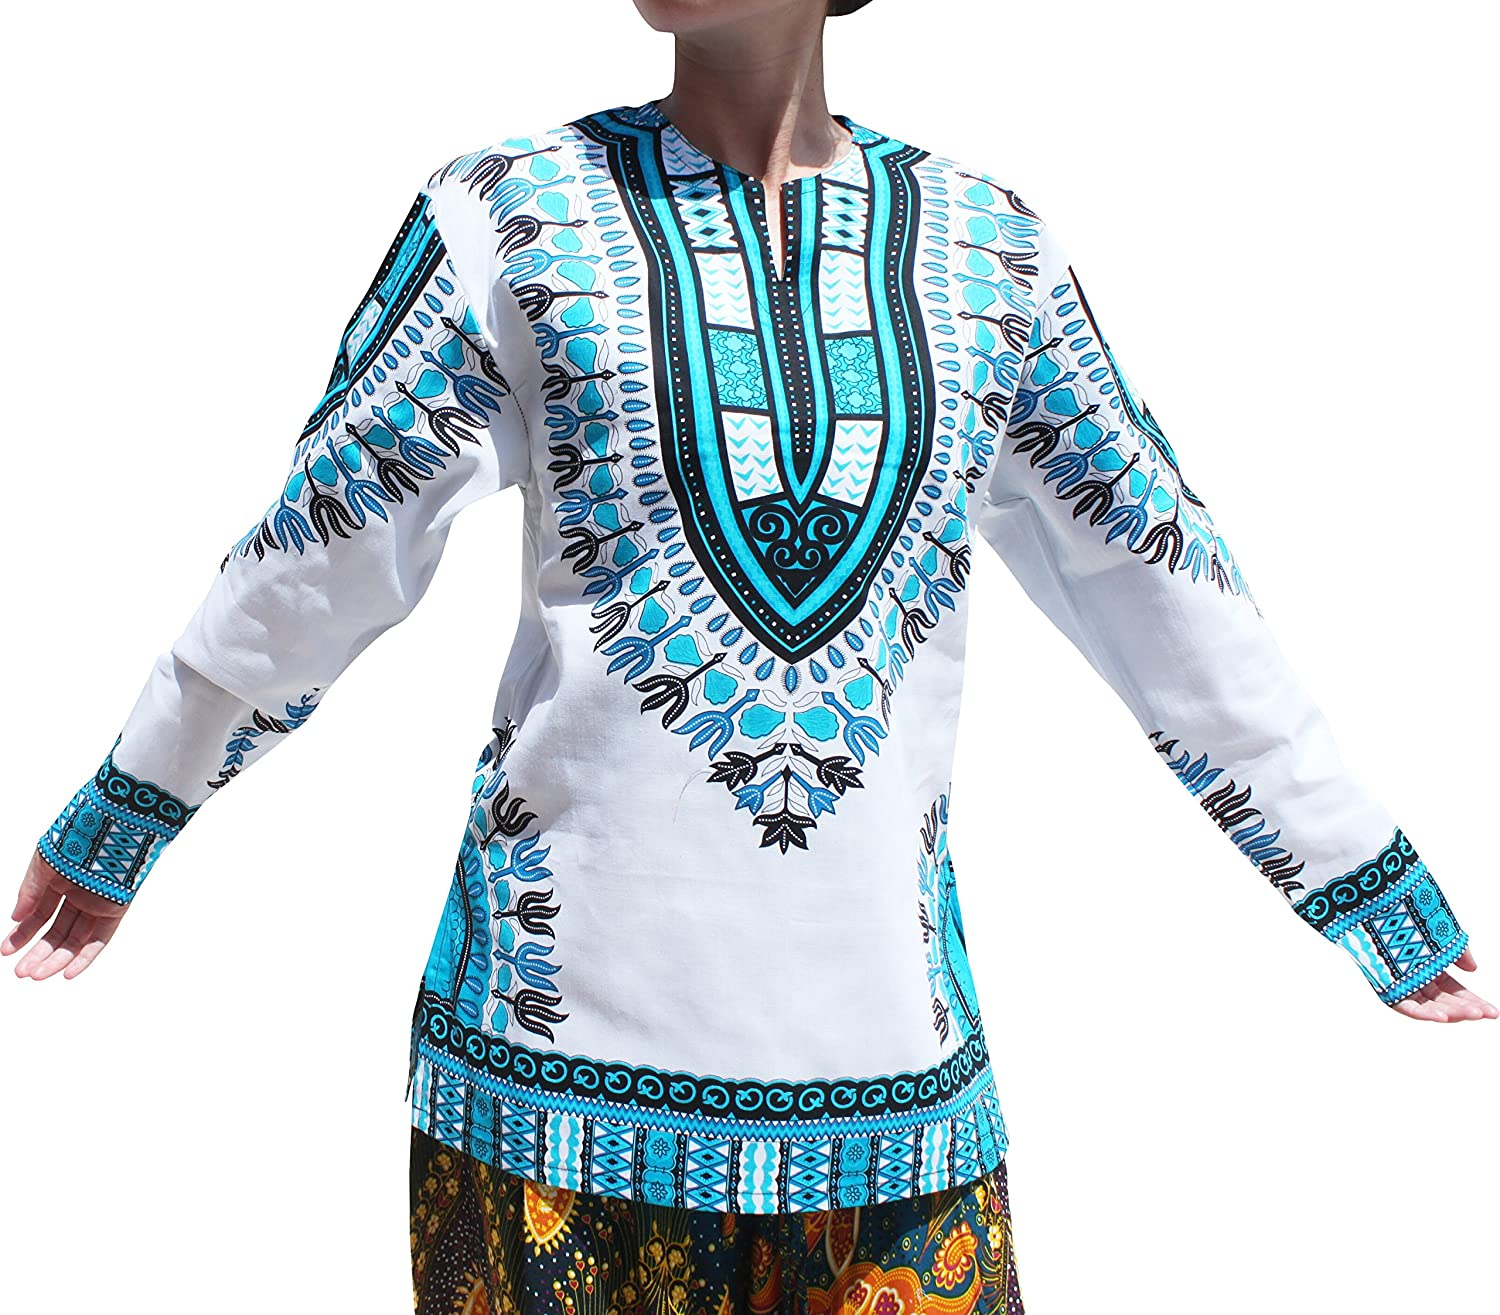 Raan Pah Muang Open Collar Long Sleeve African Dashiki Print Dance to Afrika Shirt variant45710AMZ